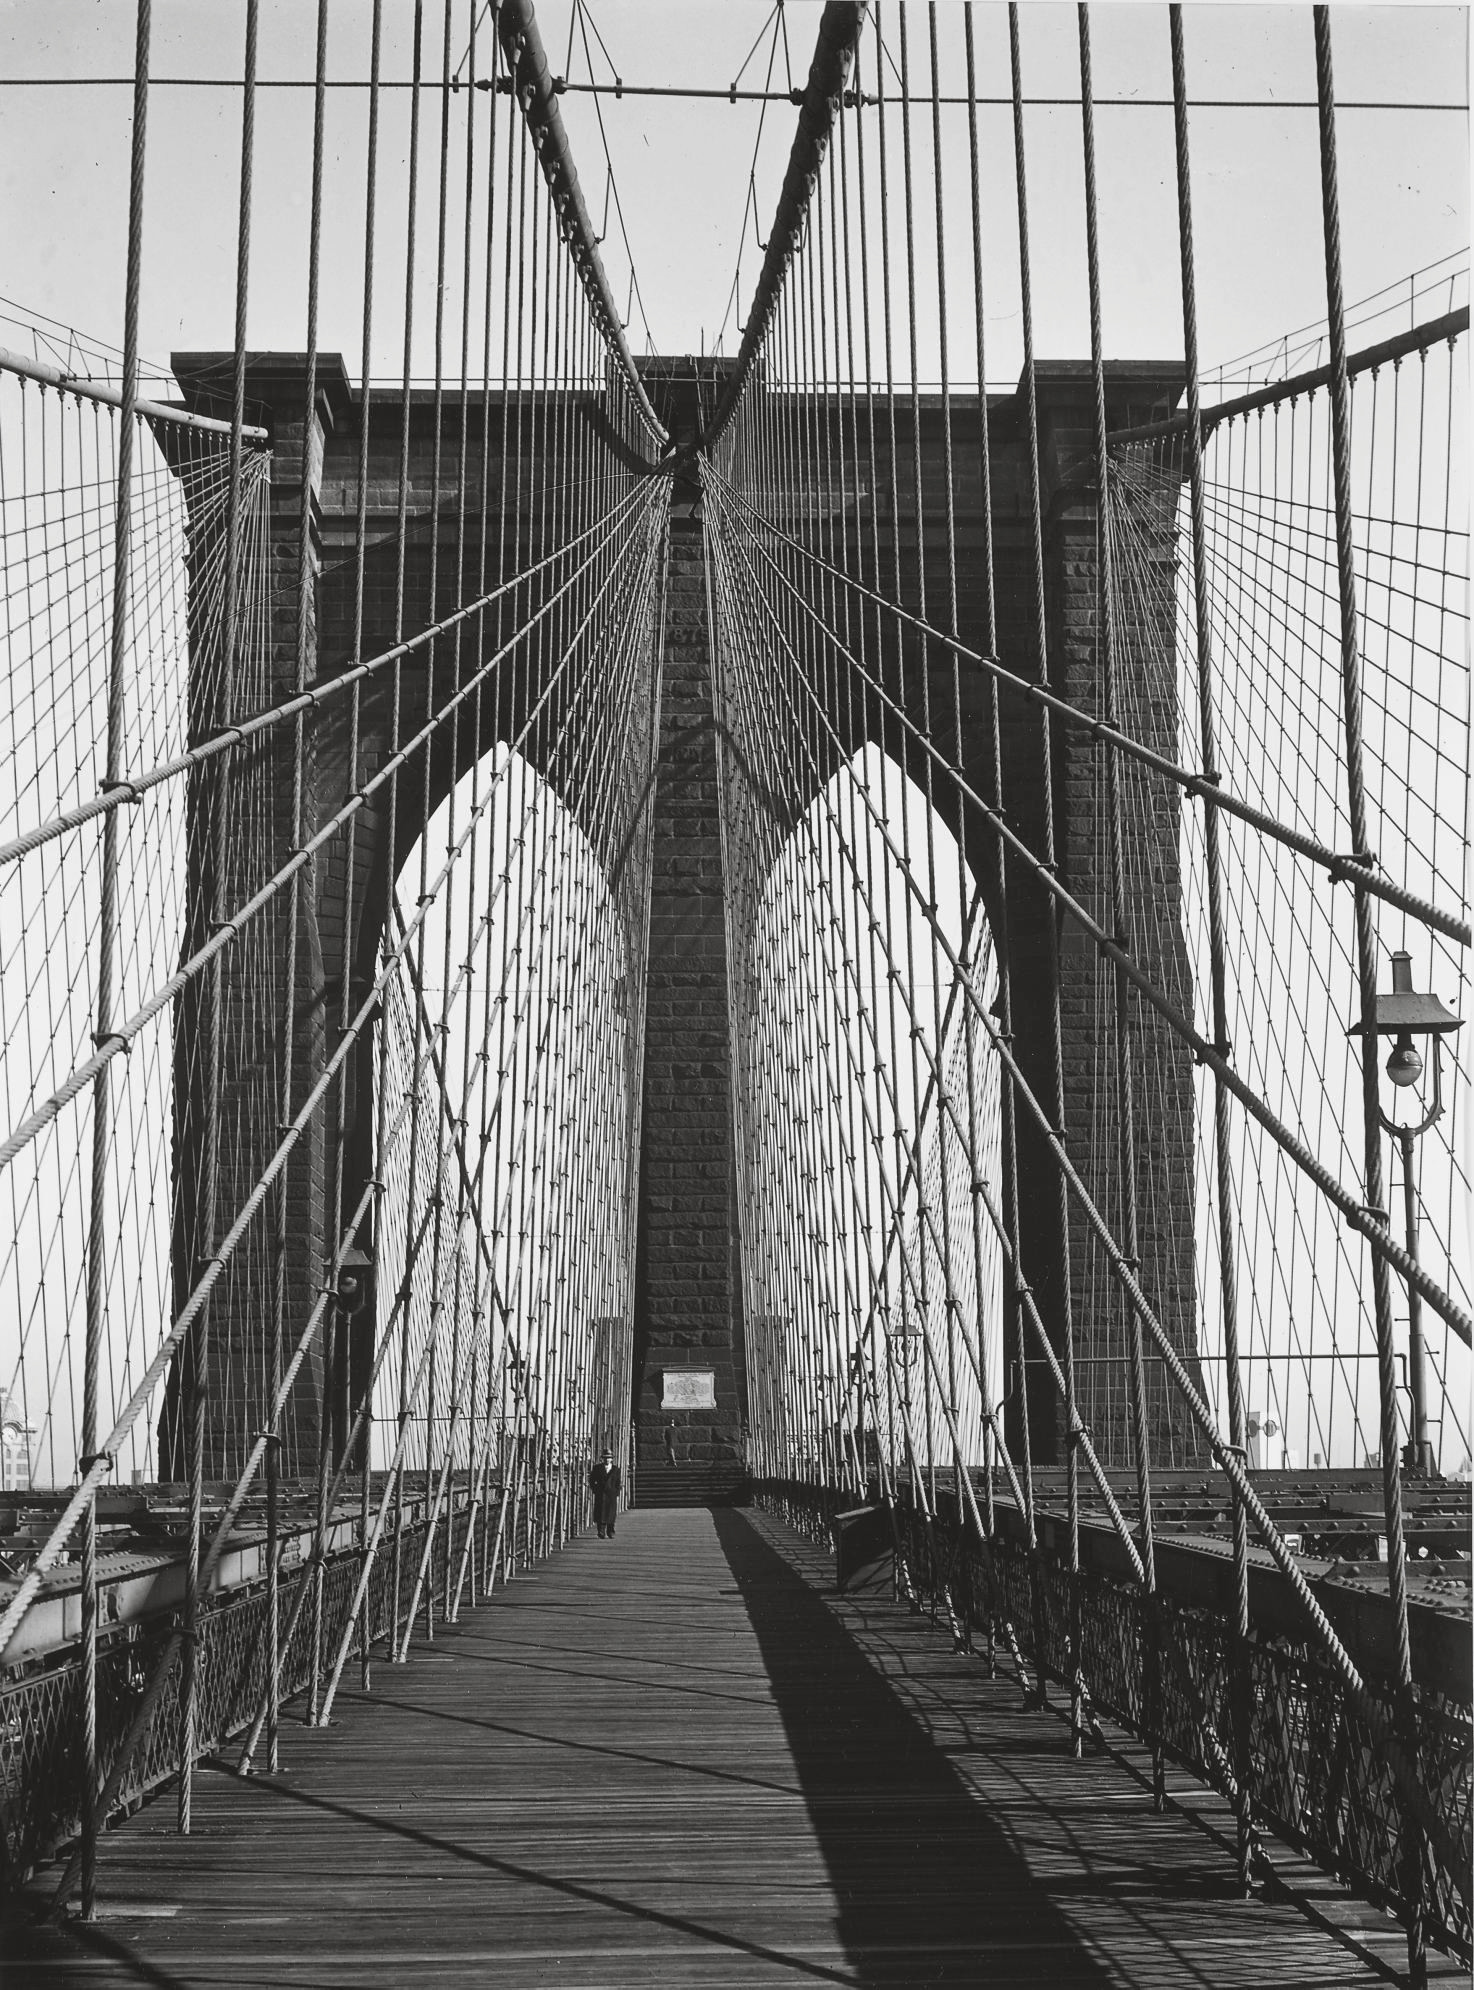 Brooklyn Bridge, New York, 1946